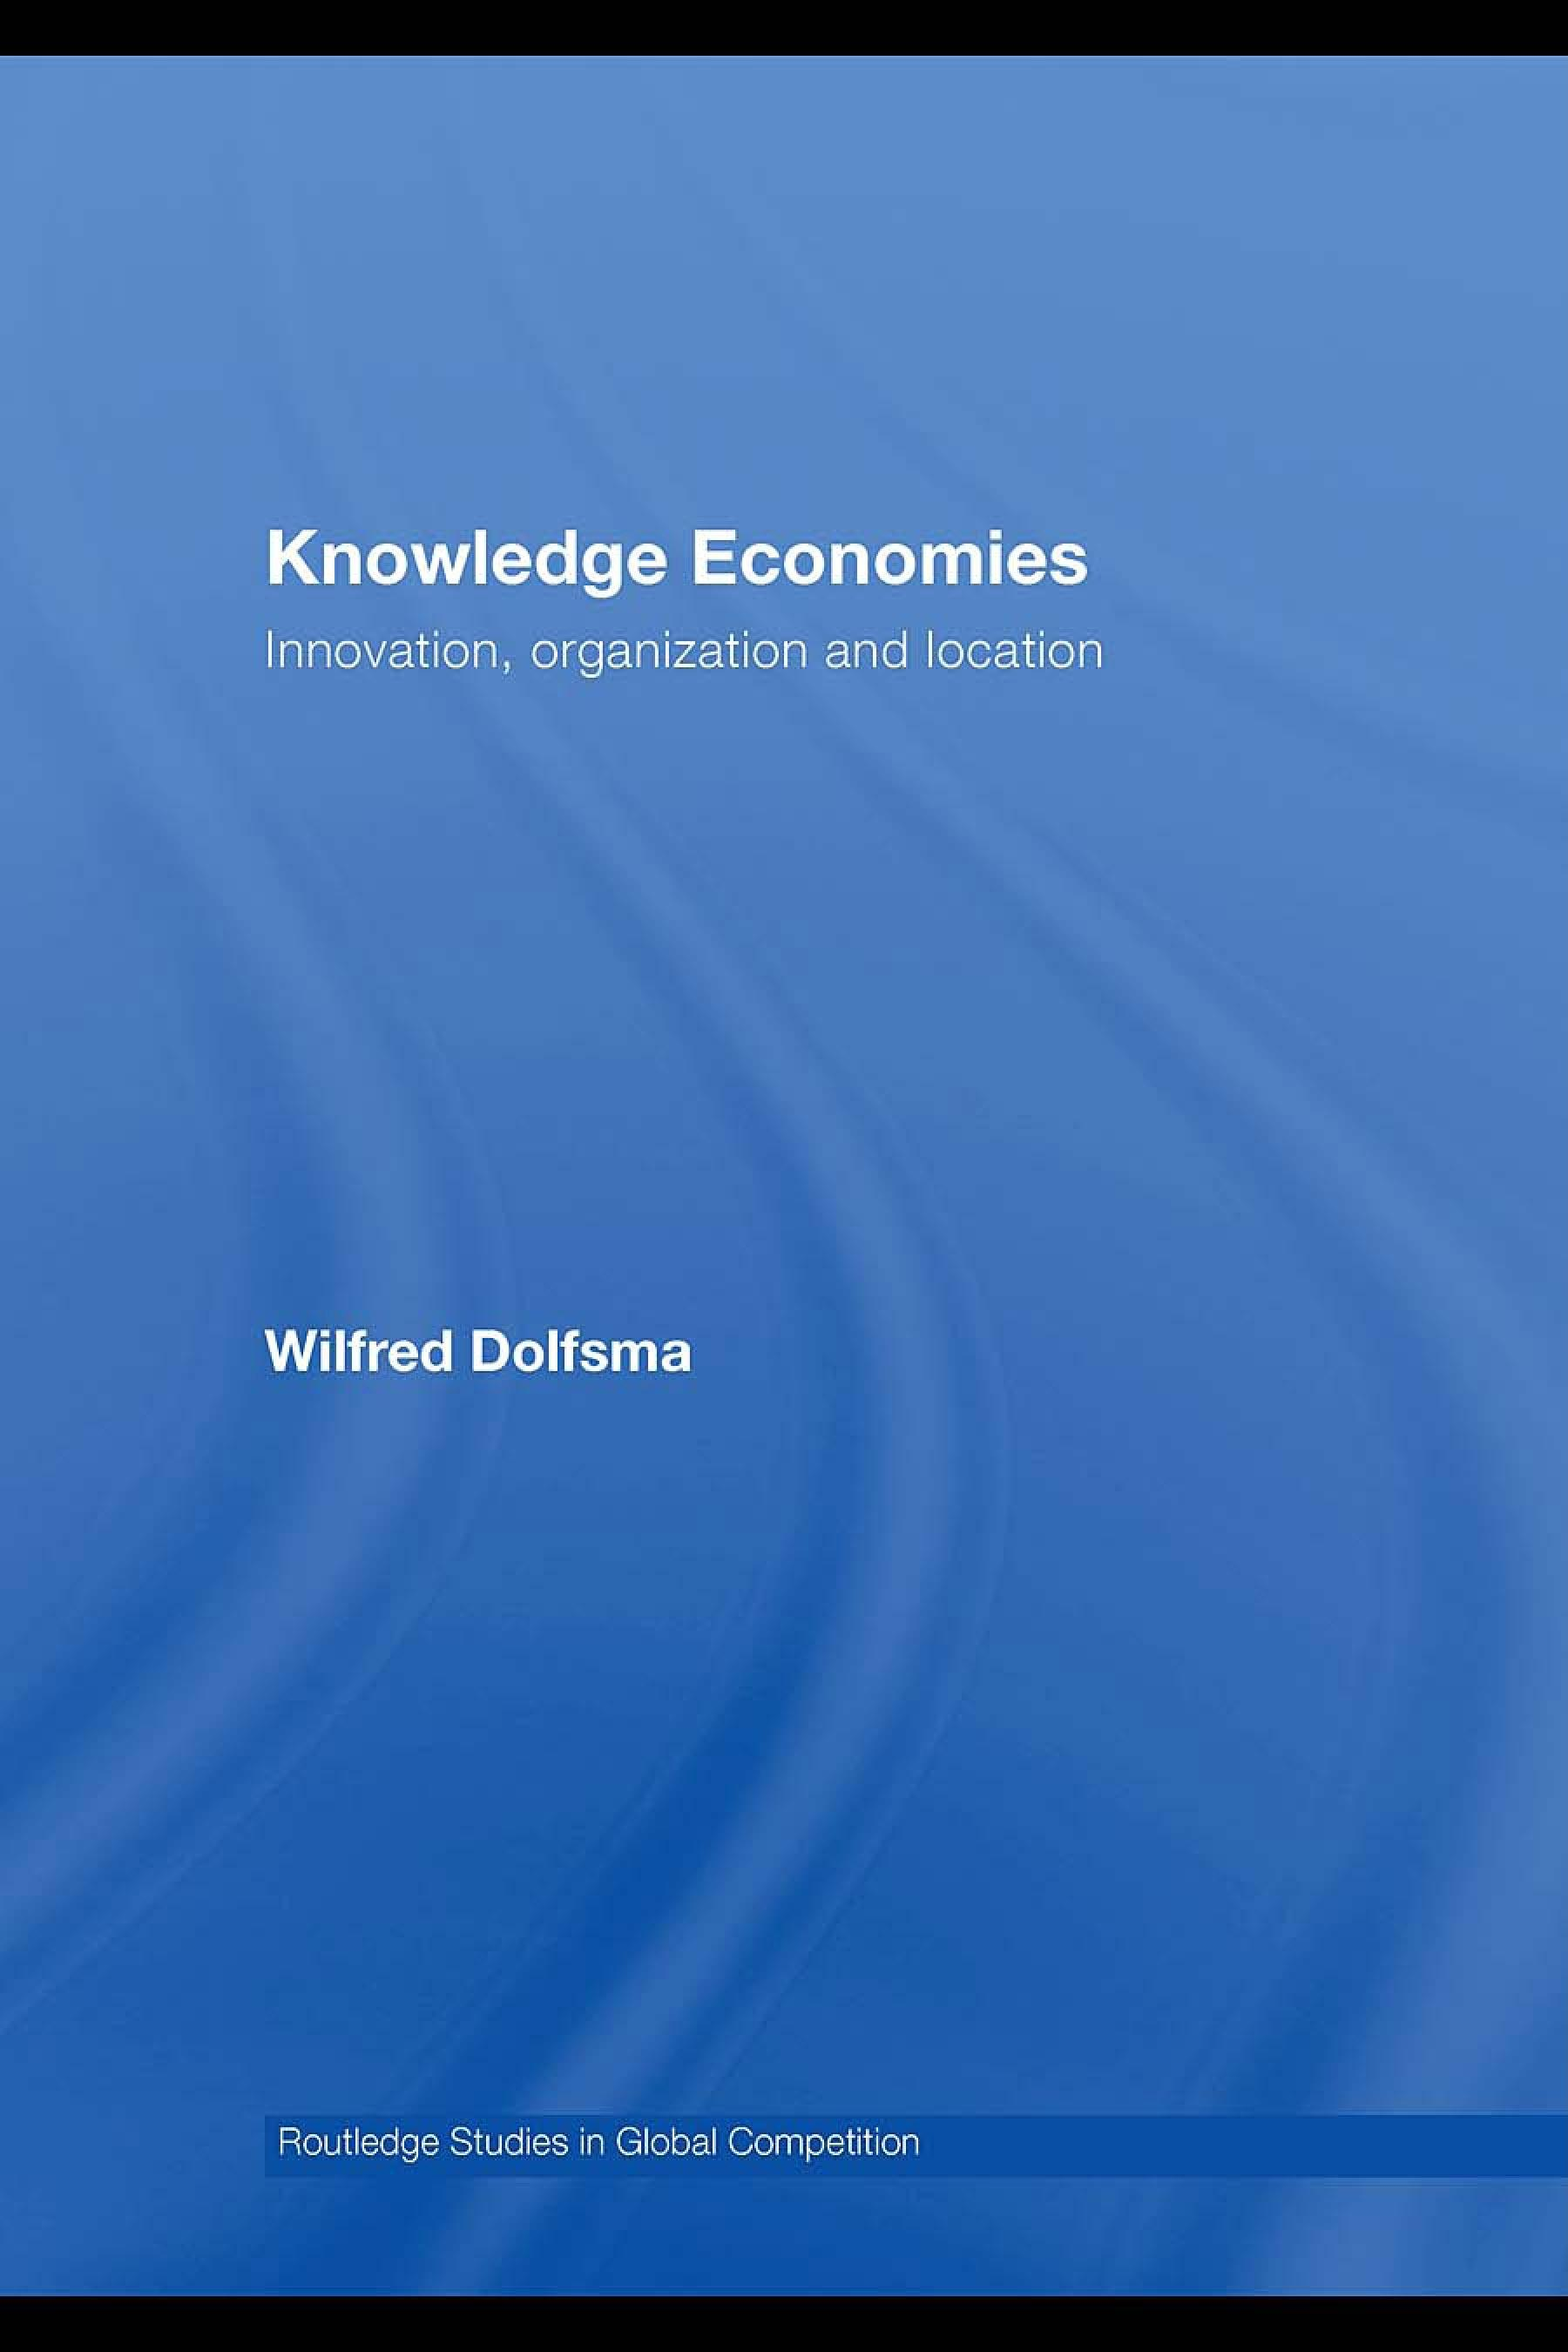 Knowledge Economies: Organization, location and innovation EB9780203929698